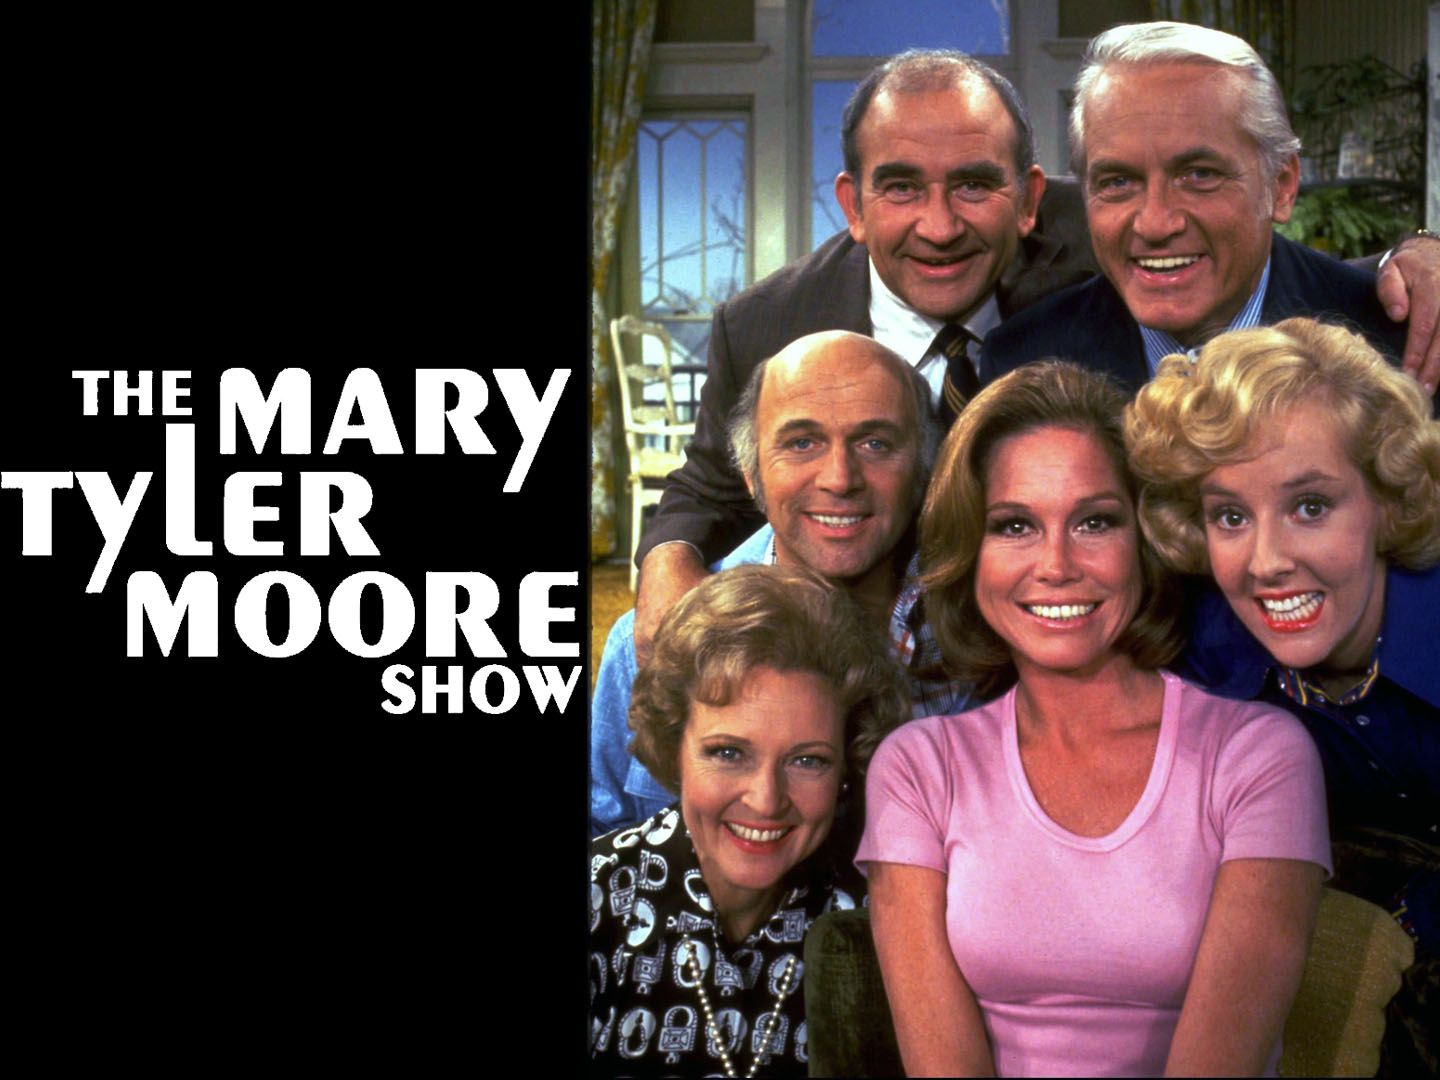 Mary tyler moore show pictures posters news and videos on your pursuit hobbies interests - Mary tyler moore show ...